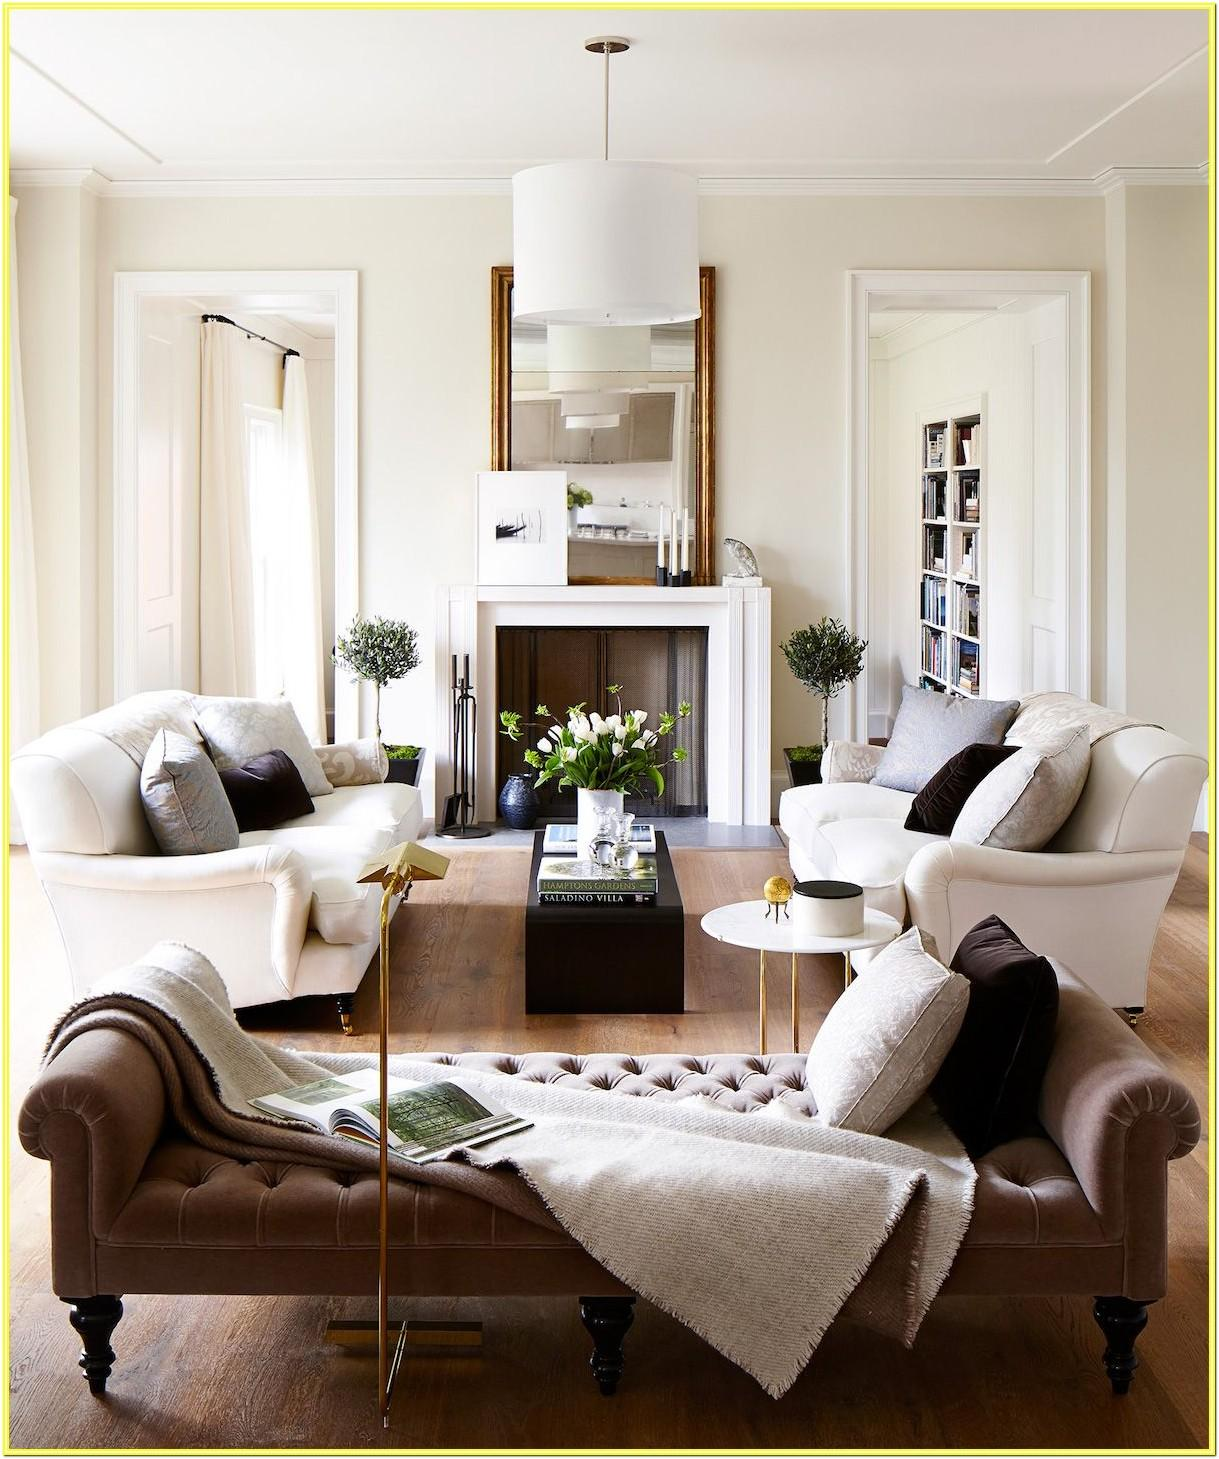 Color Schemes For Living Room With White Walls